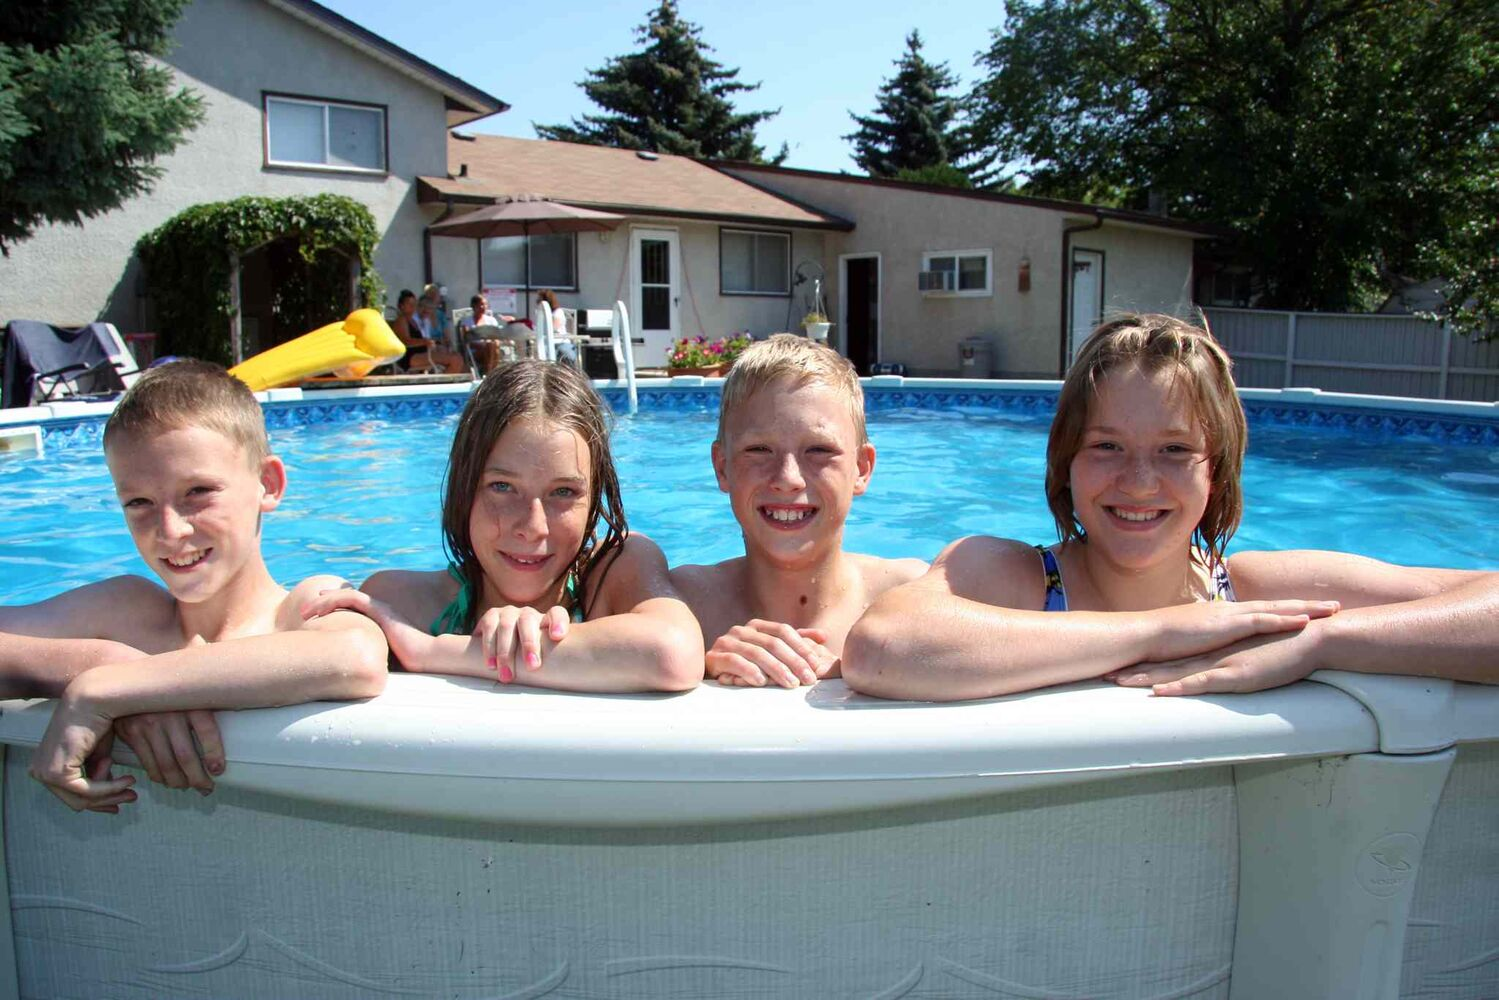 Gregory, left, Maryn, Myles and Janelle, soak up some sun just before their 13th birthday. (Matt Goerzen/Brandon Sun files)